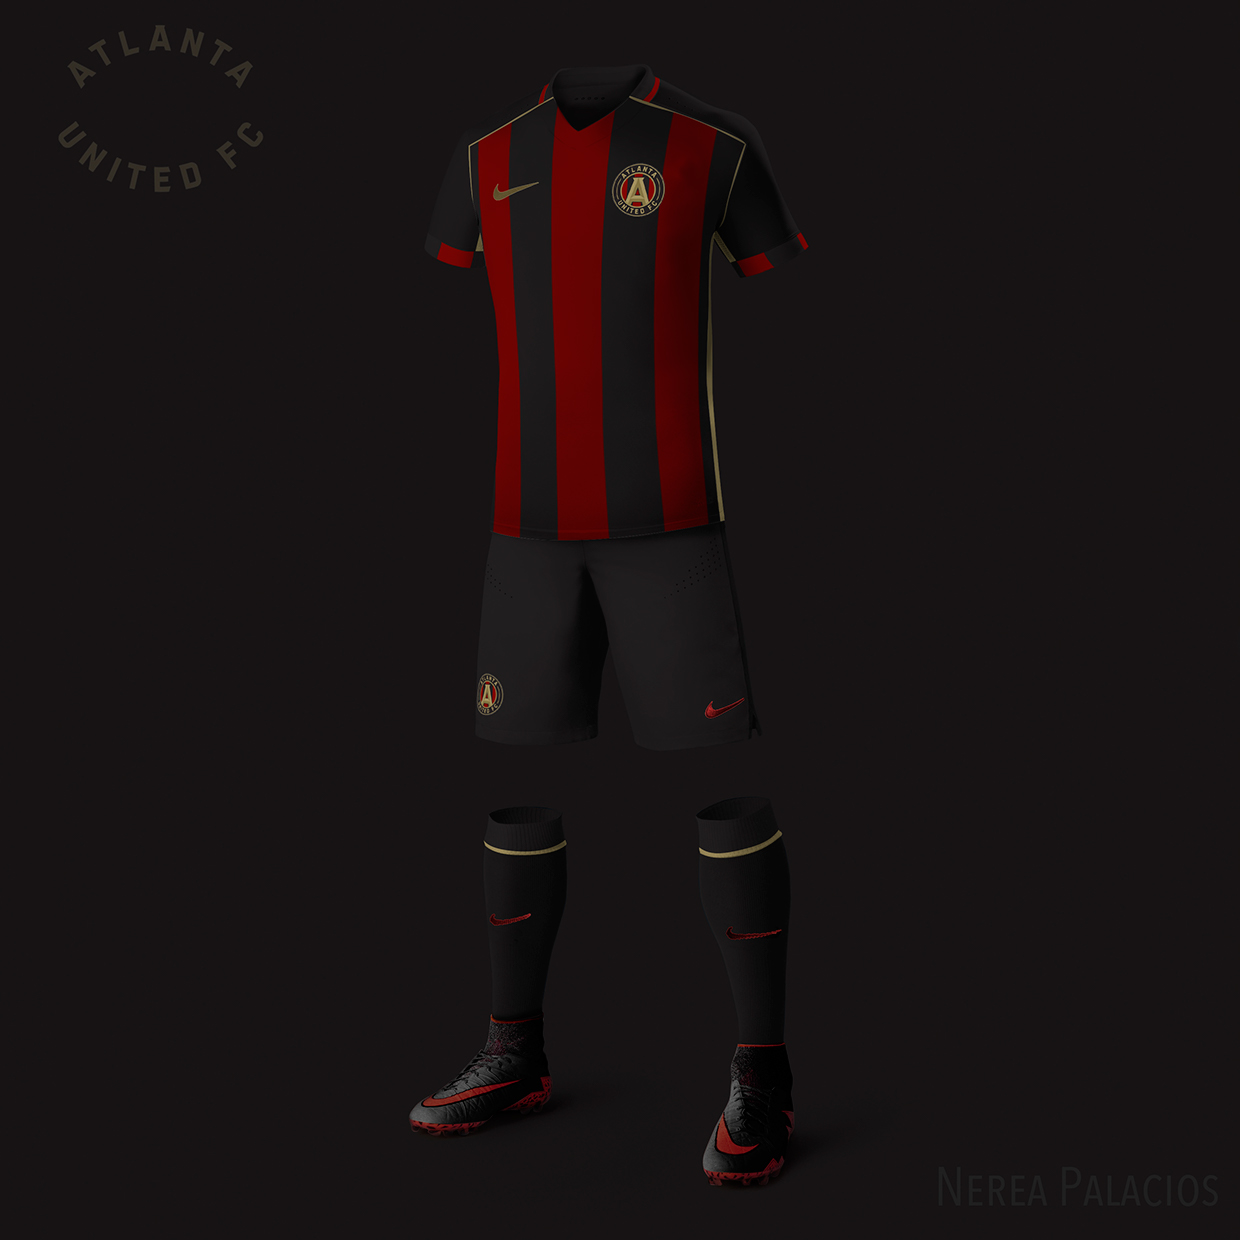 8c19cde12 What if MLS clubs switched jerseys from adidas to Nike? Check out ...